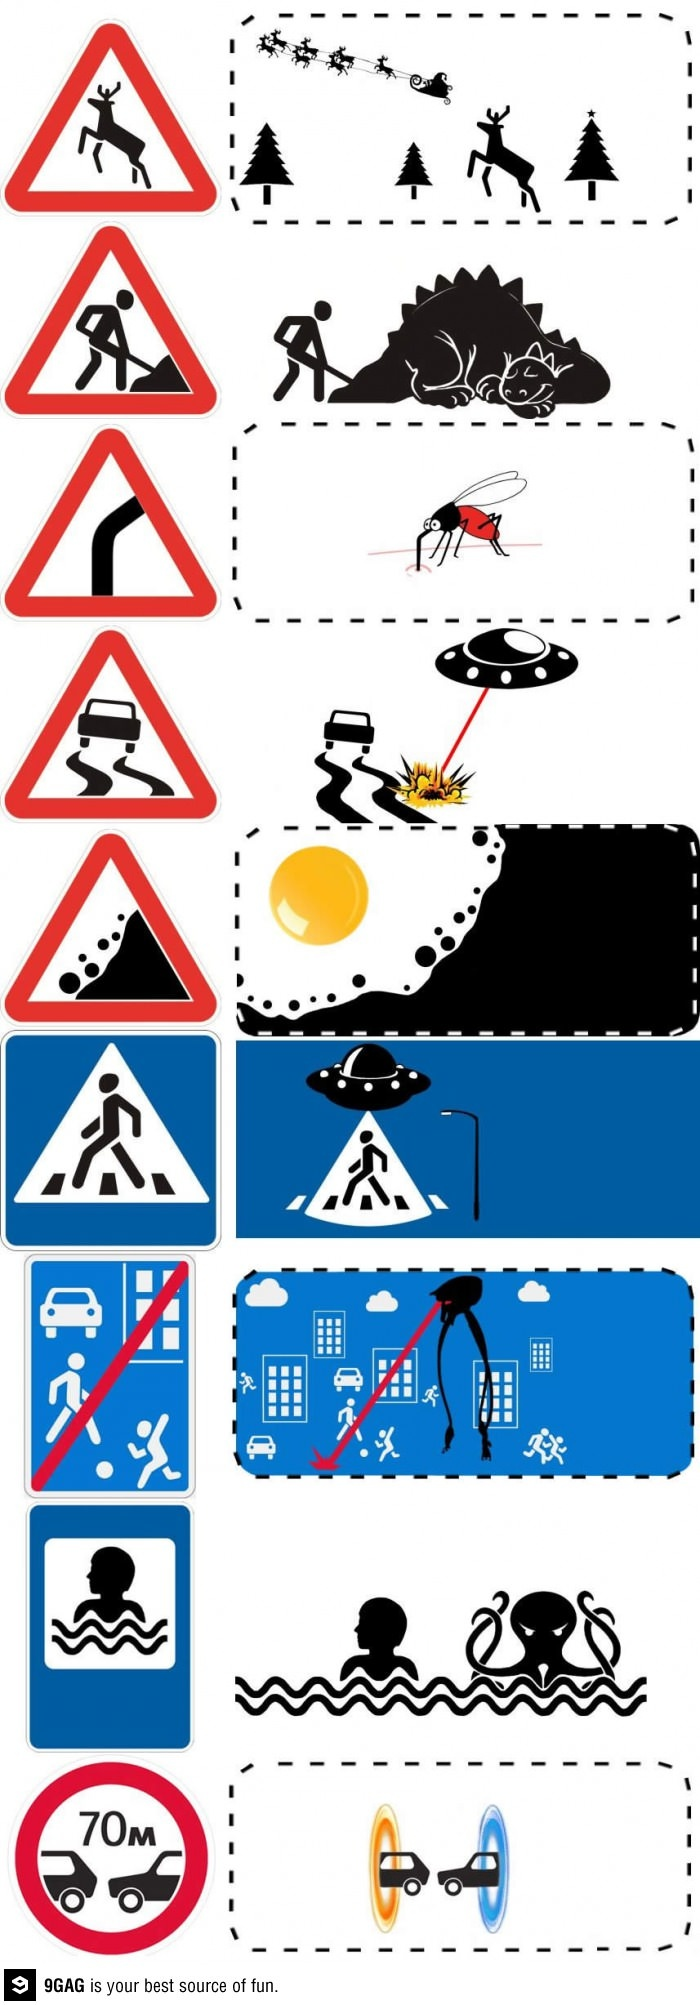 The true meaning of driving signs